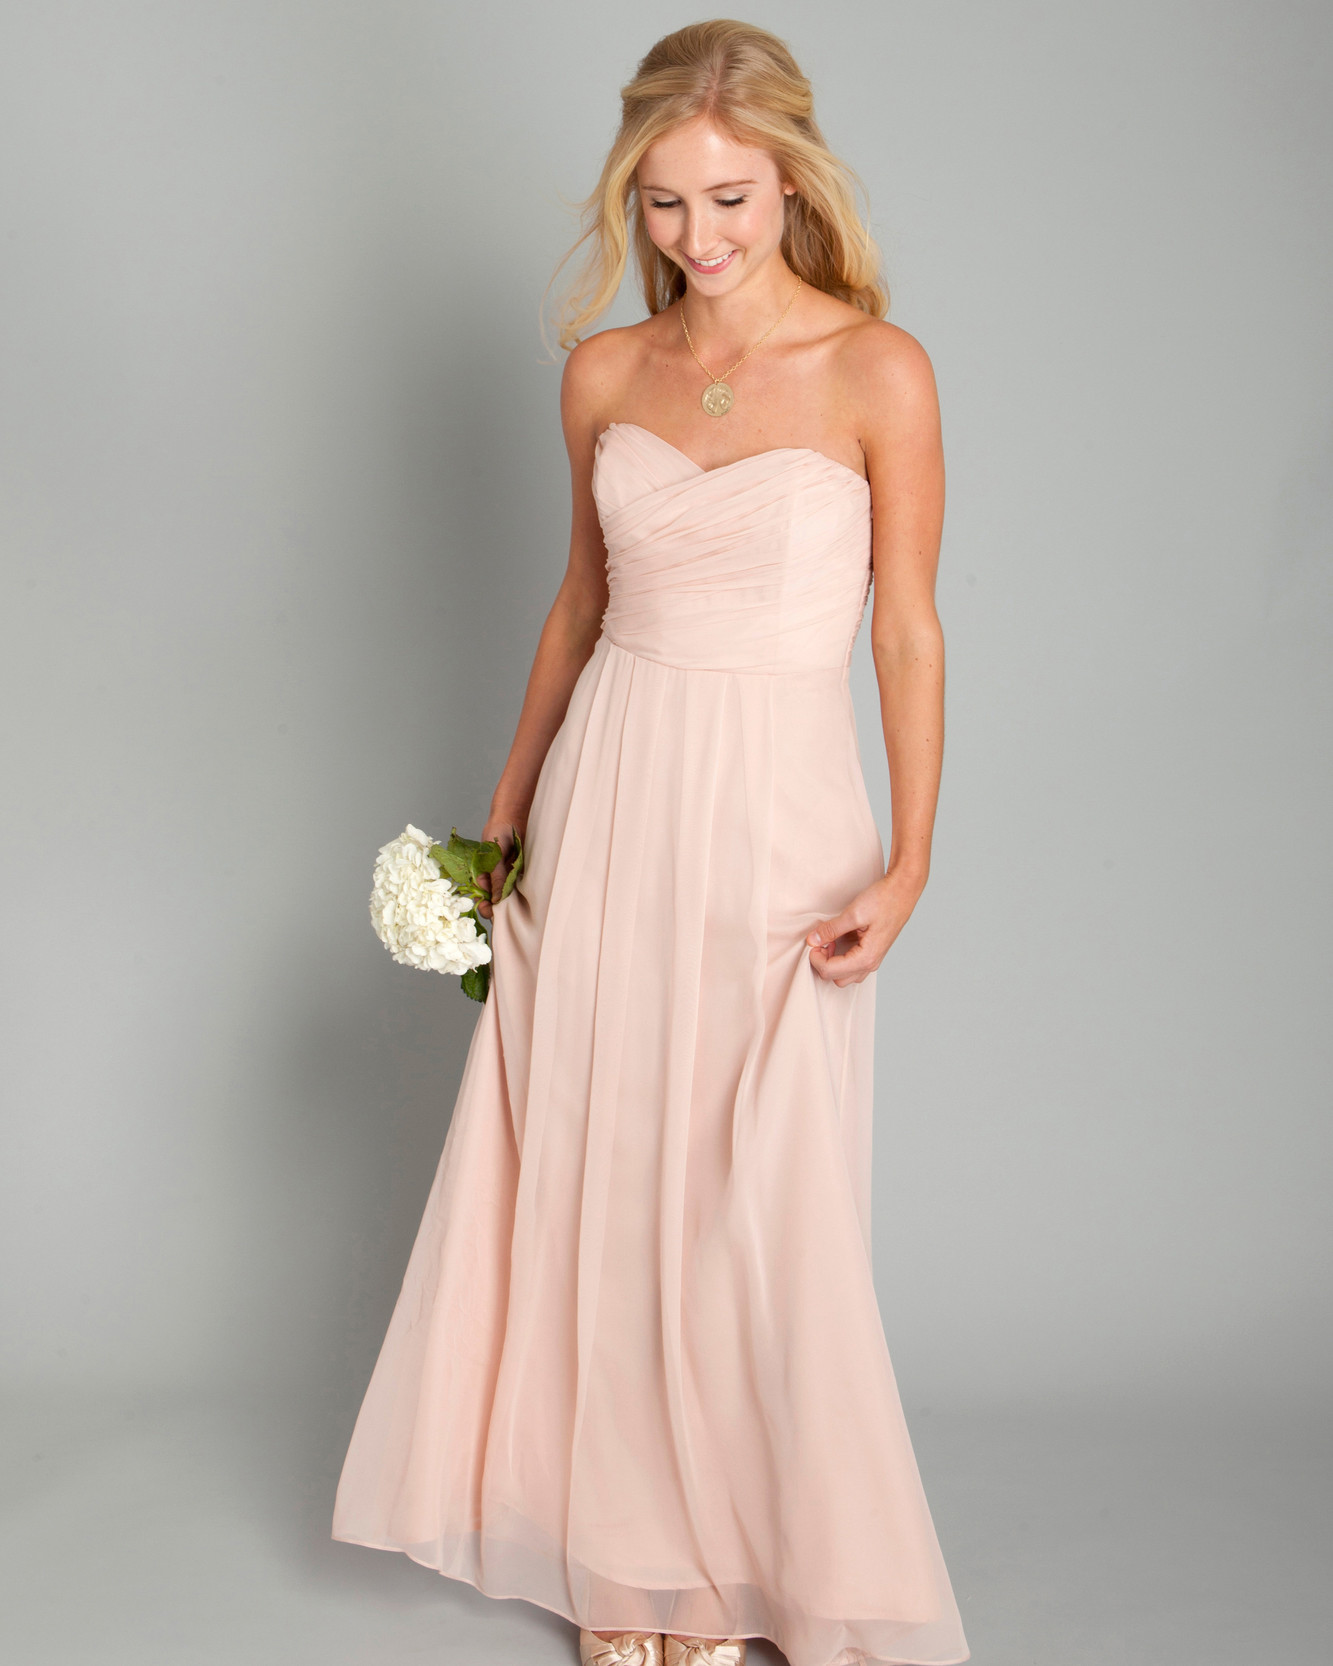 Winter Bridesmaid Dresses for a Cold-Weather Wedding | Martha ...